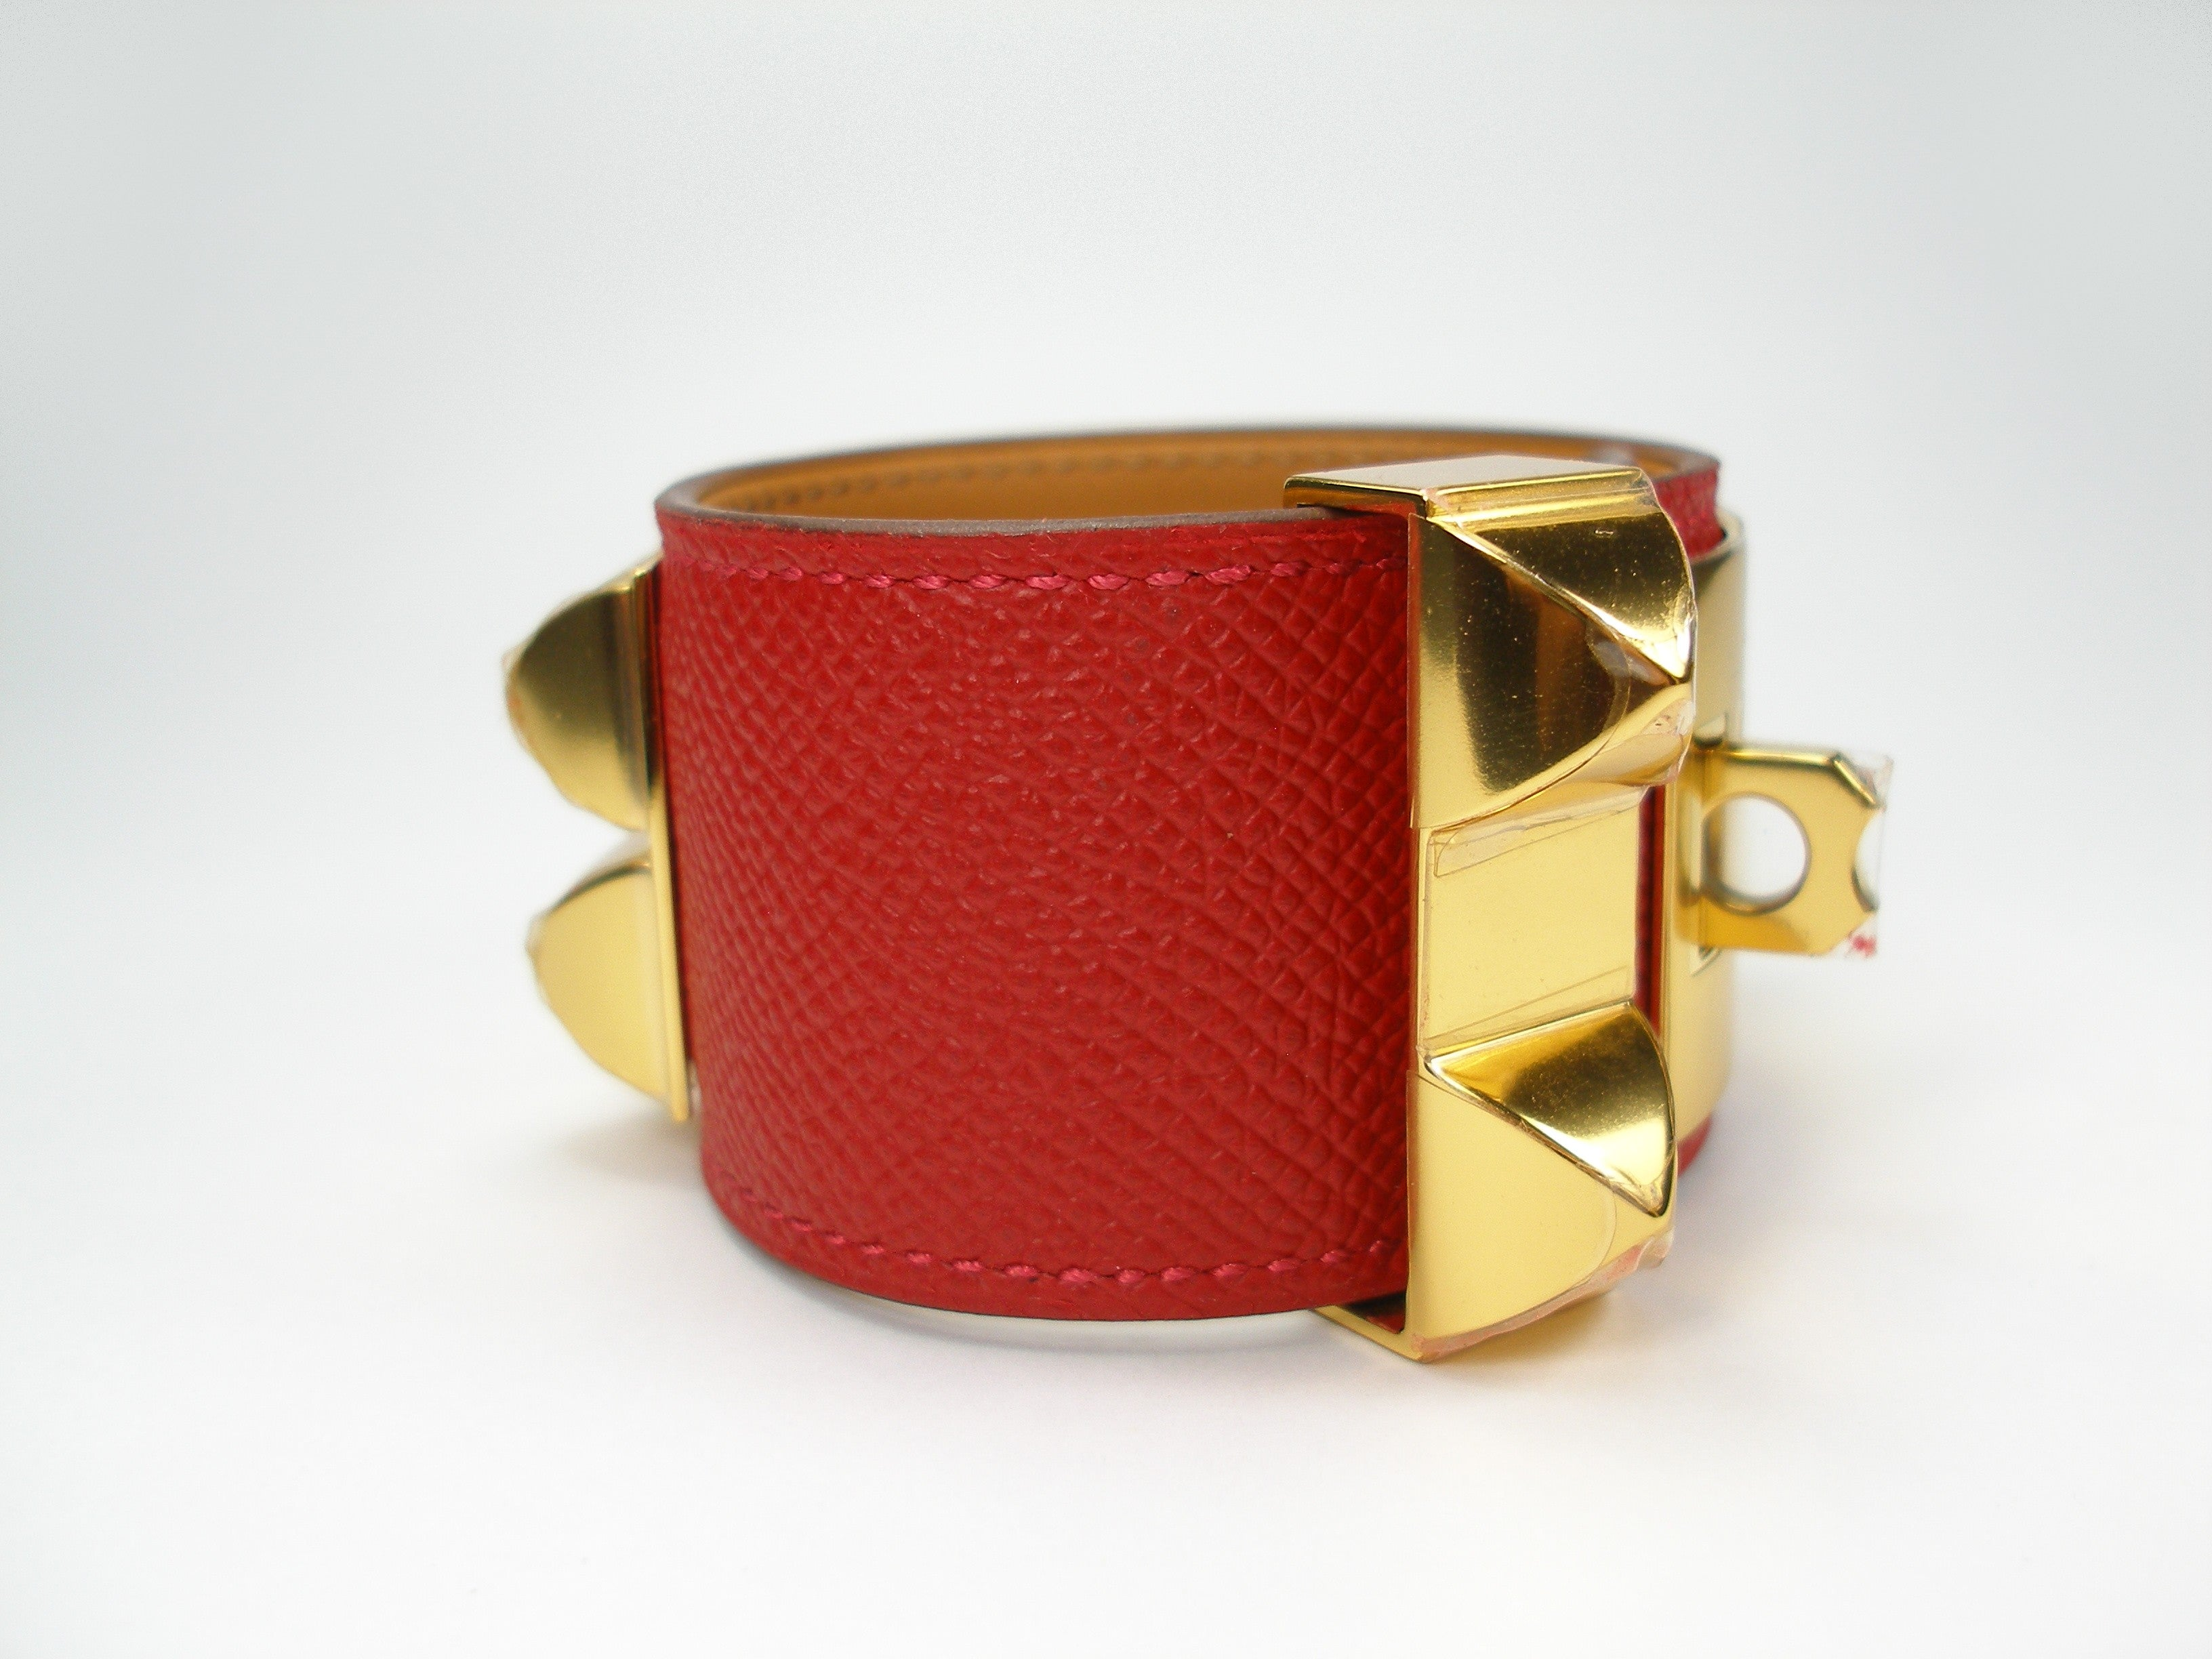 bracelet wrap the herm hermes realreal bracelets de s products chien collier enlarged jewelry